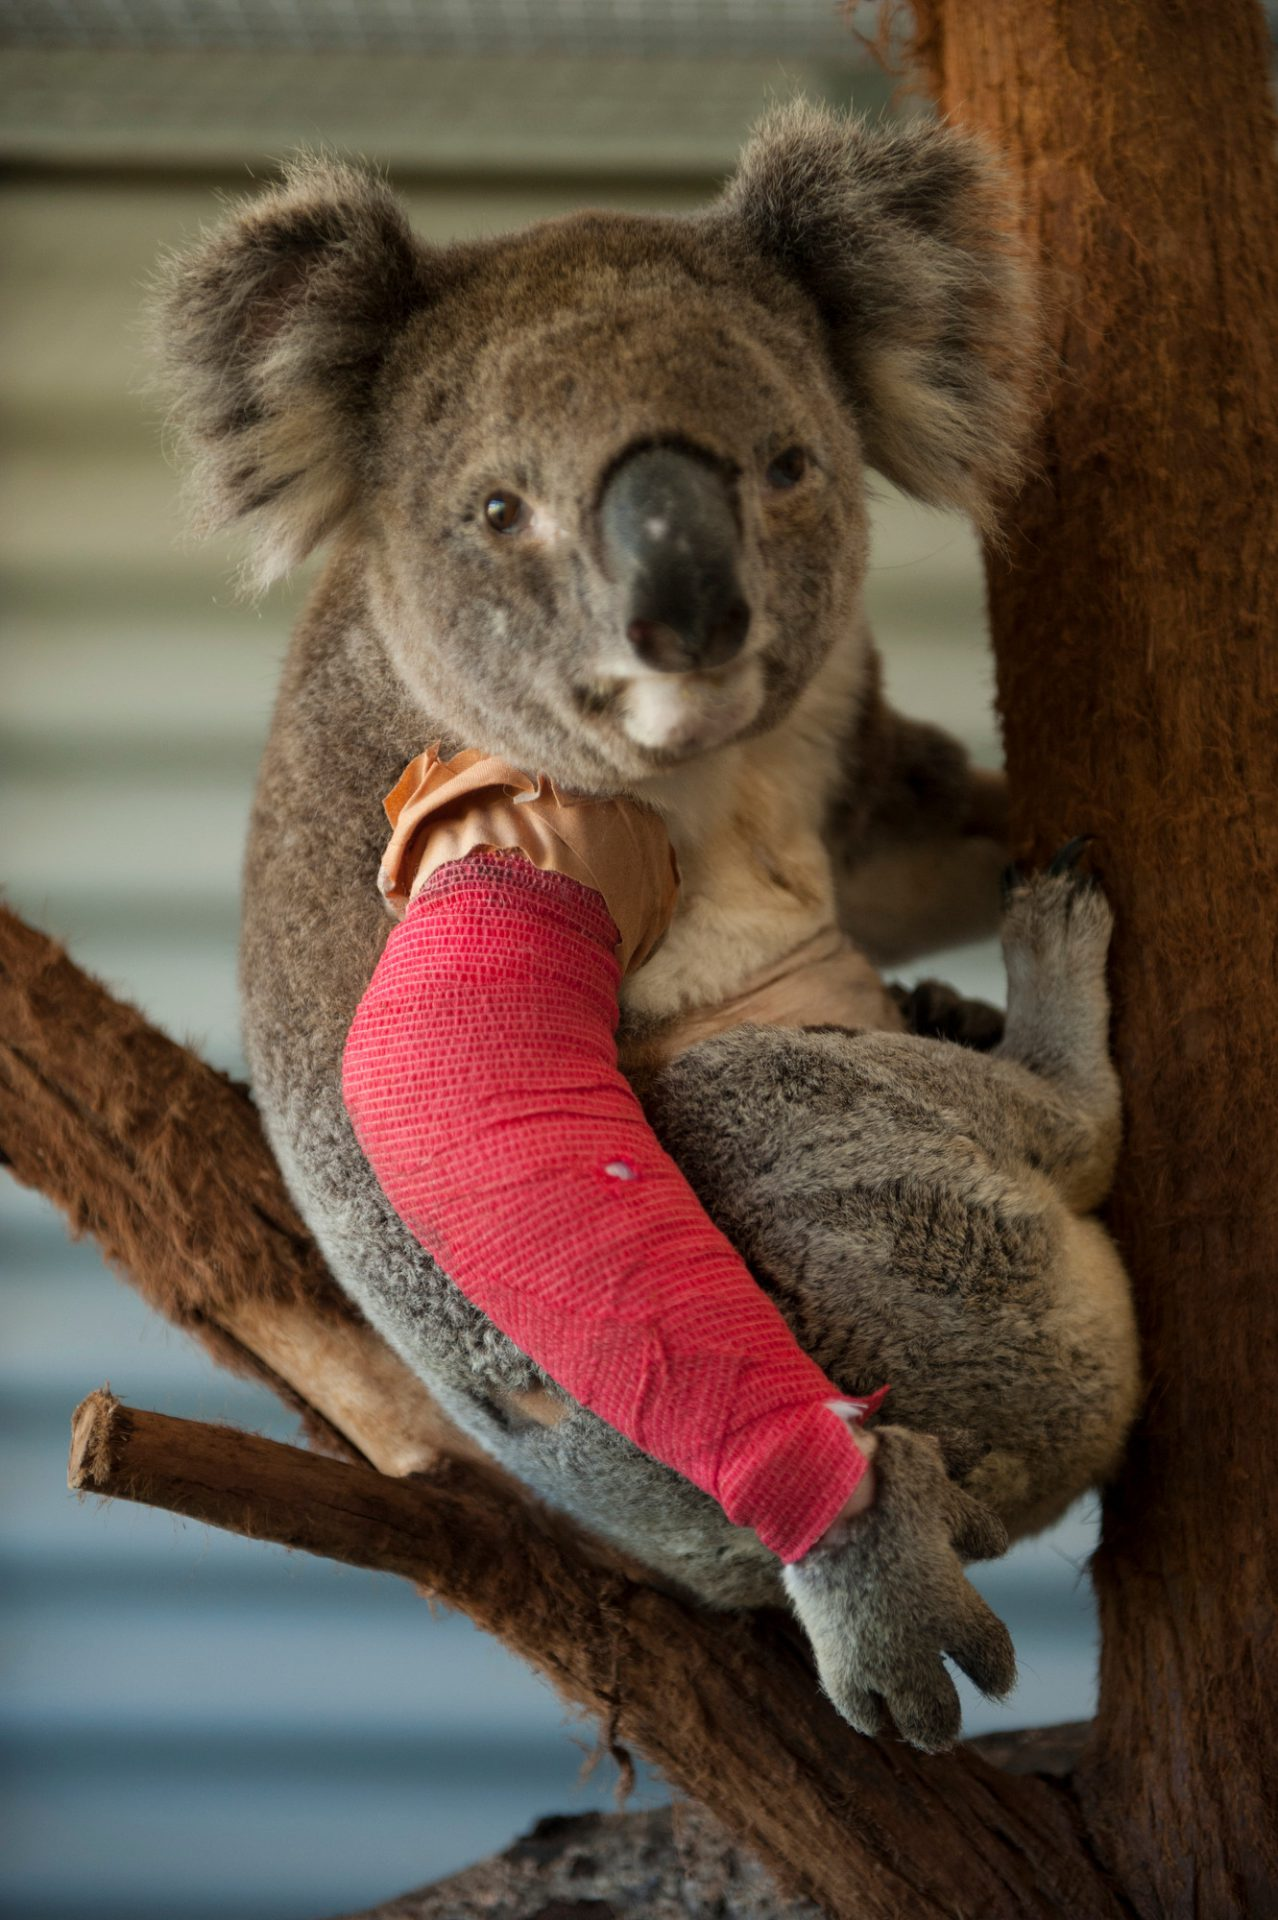 Photo: A koala named 'Poseidon', recovers at the Australia Zoo Wildlife Hospital from a dog attack.